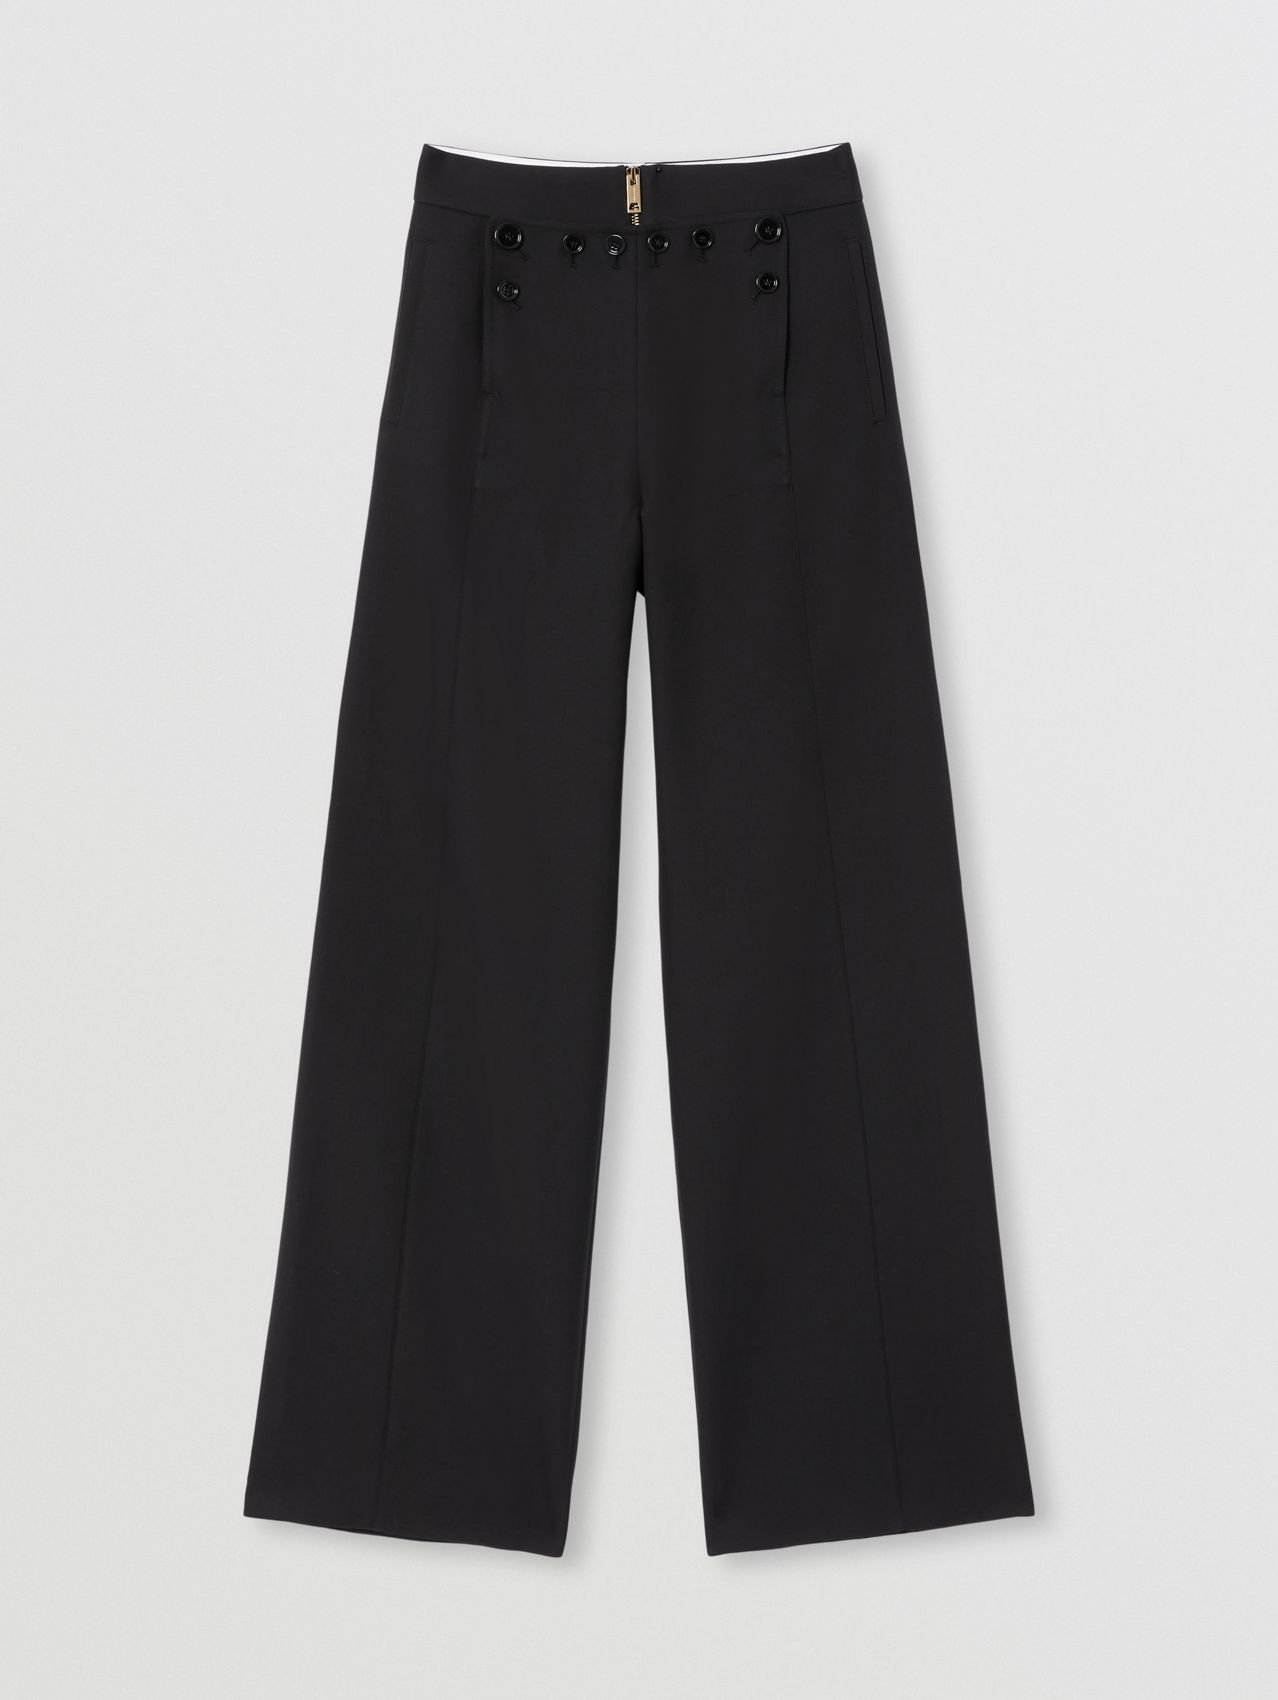 Cotton Twill Sailor Trousers in Black